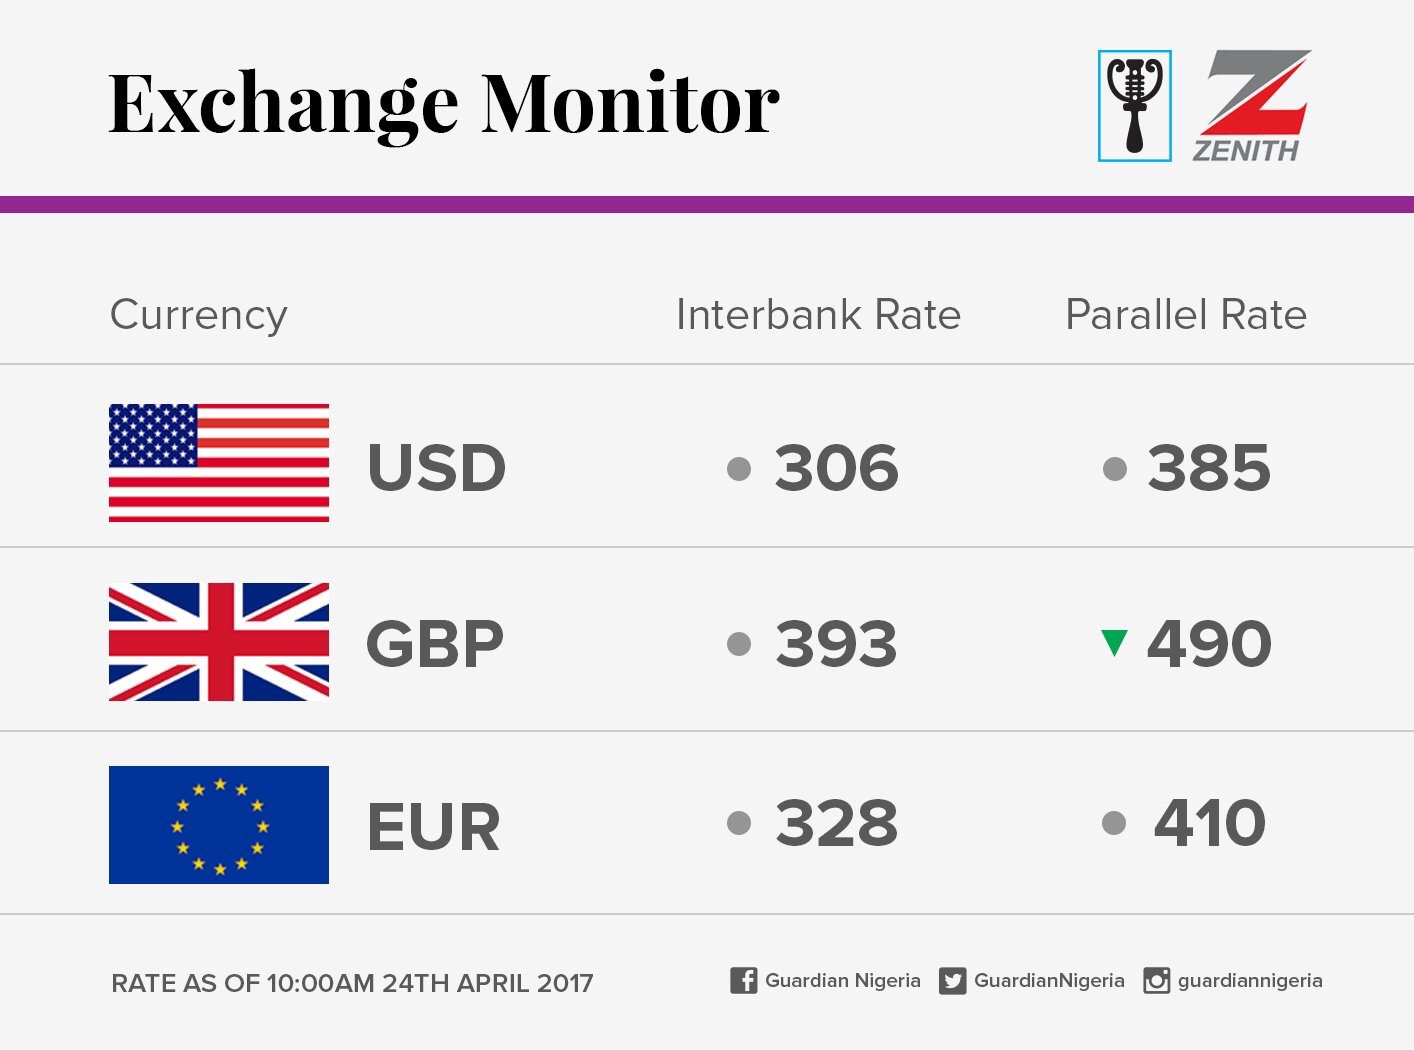 Exchange Rate For 24th April 2017